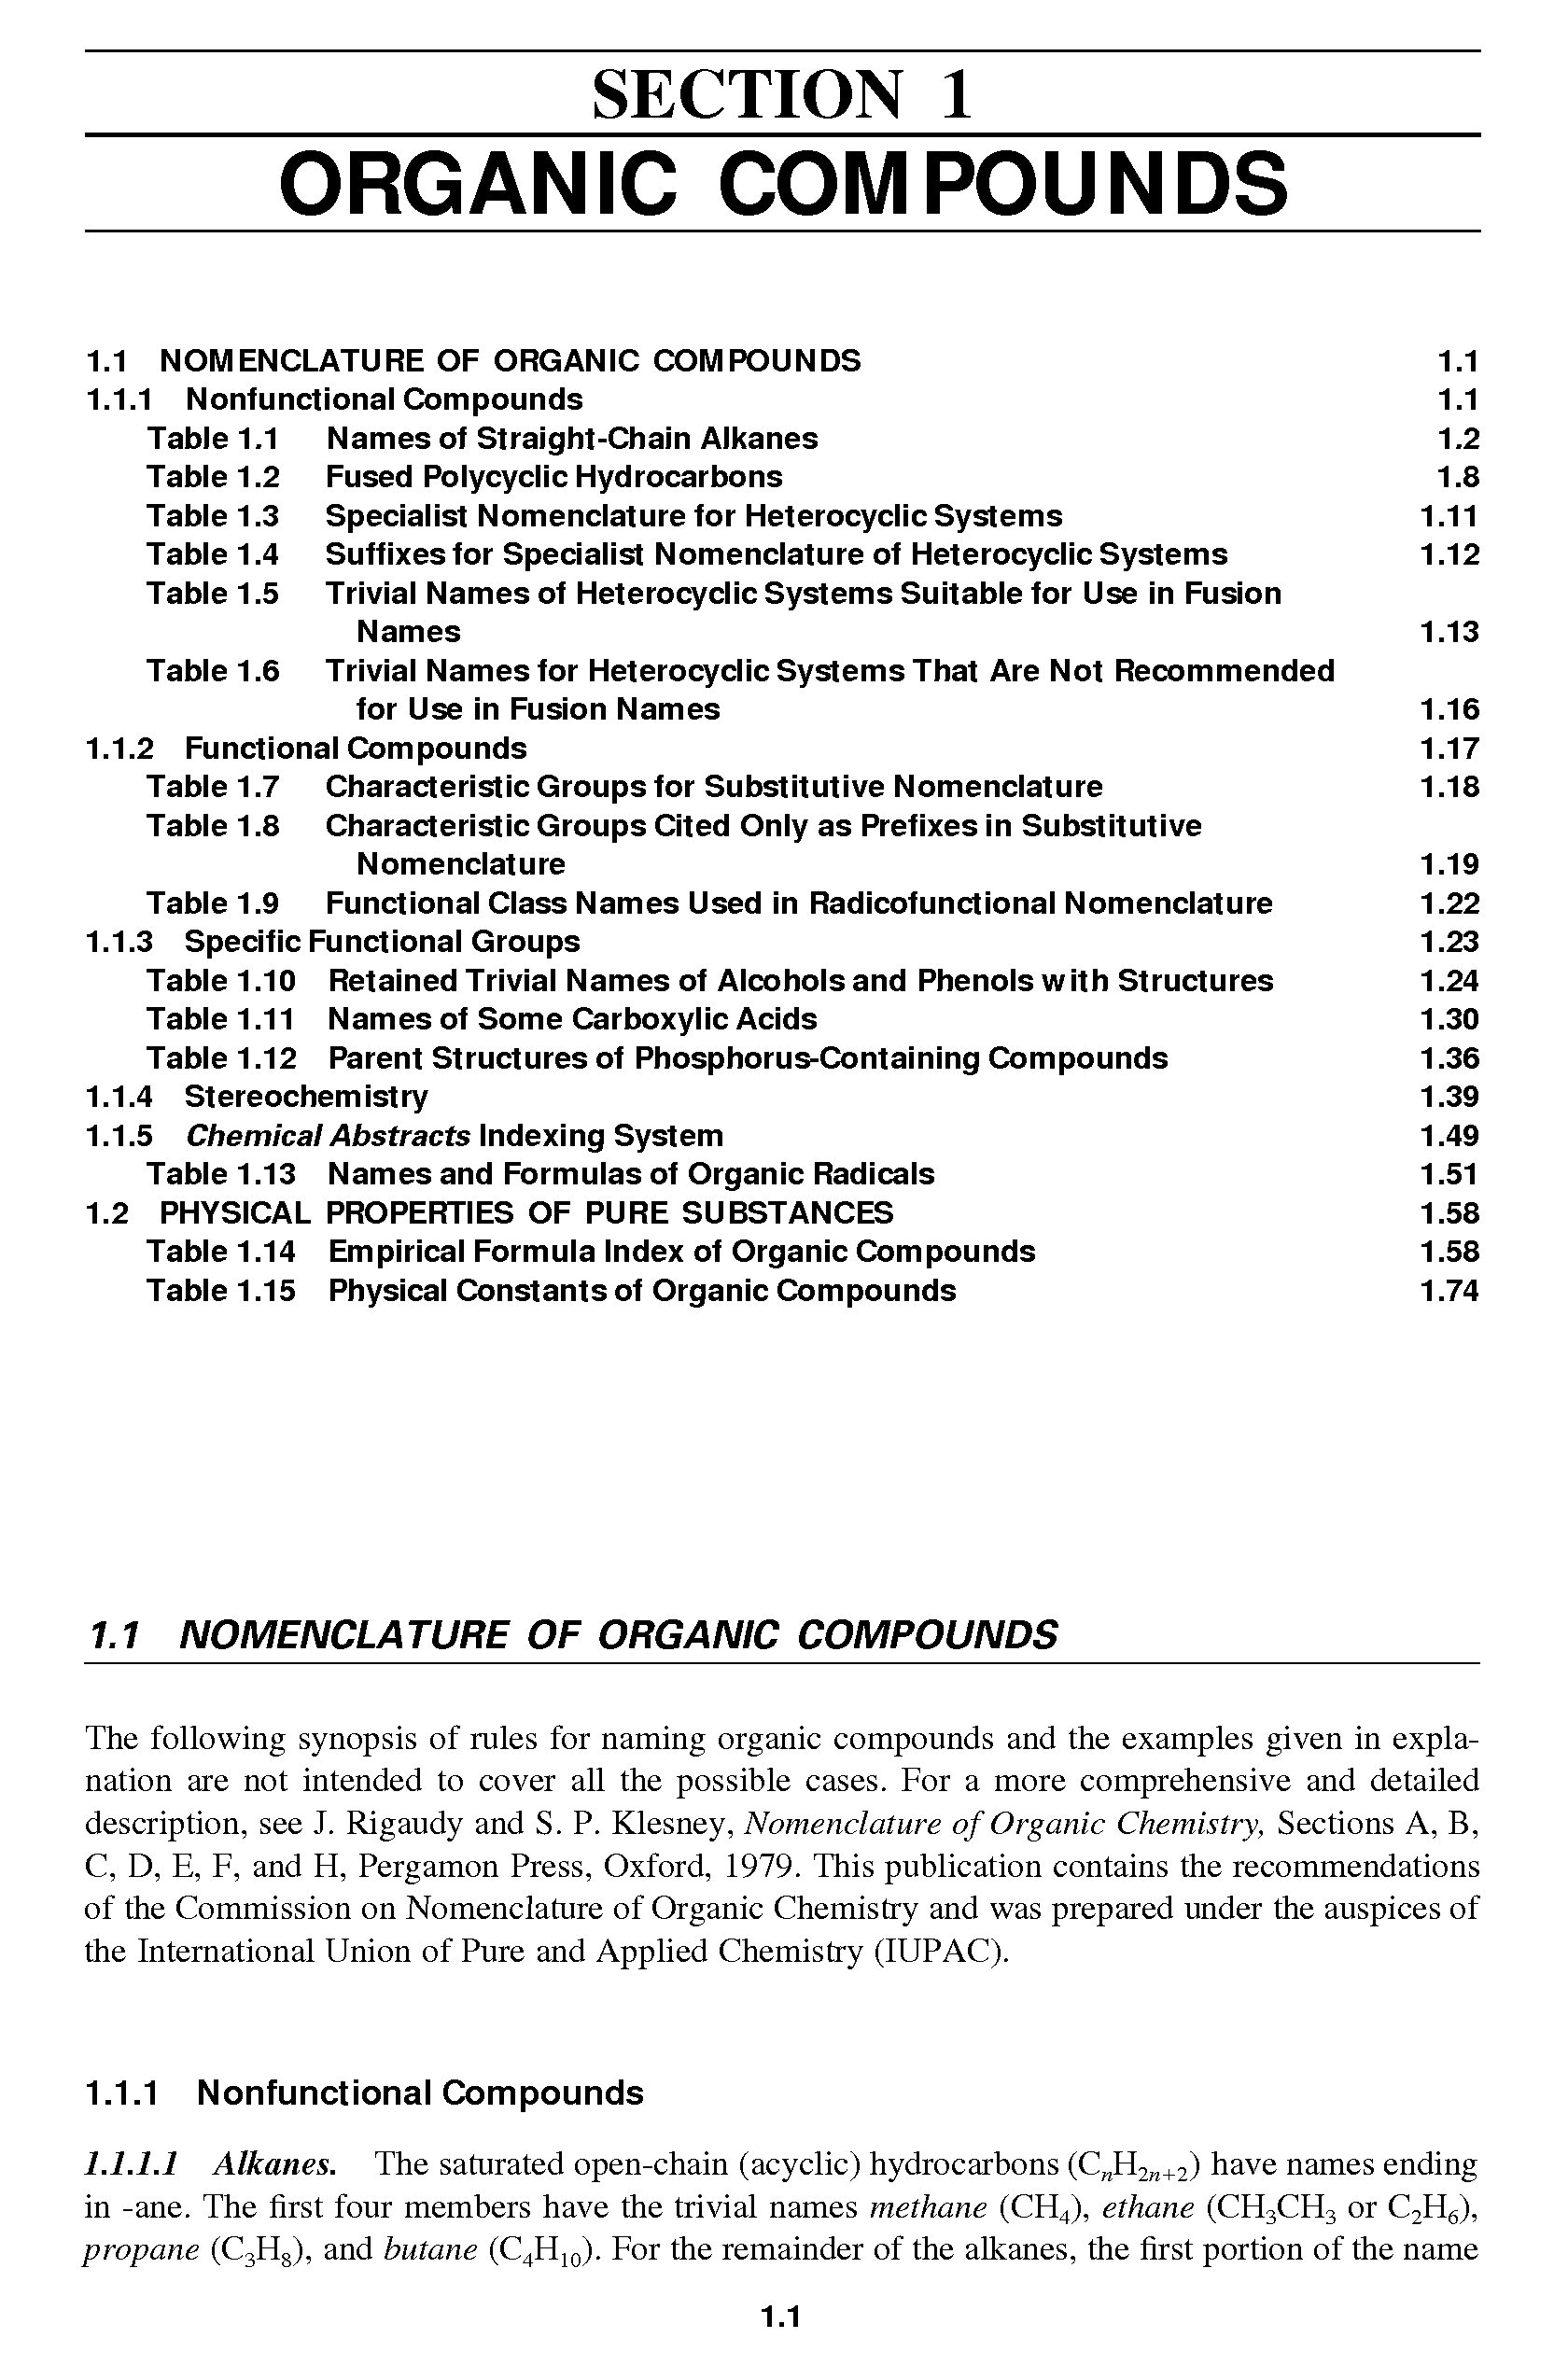 "Table 1.14 <a href=""/info/empirical_formula_index"">Empirical Formula Index</a> of Organic Compounds 1.58"